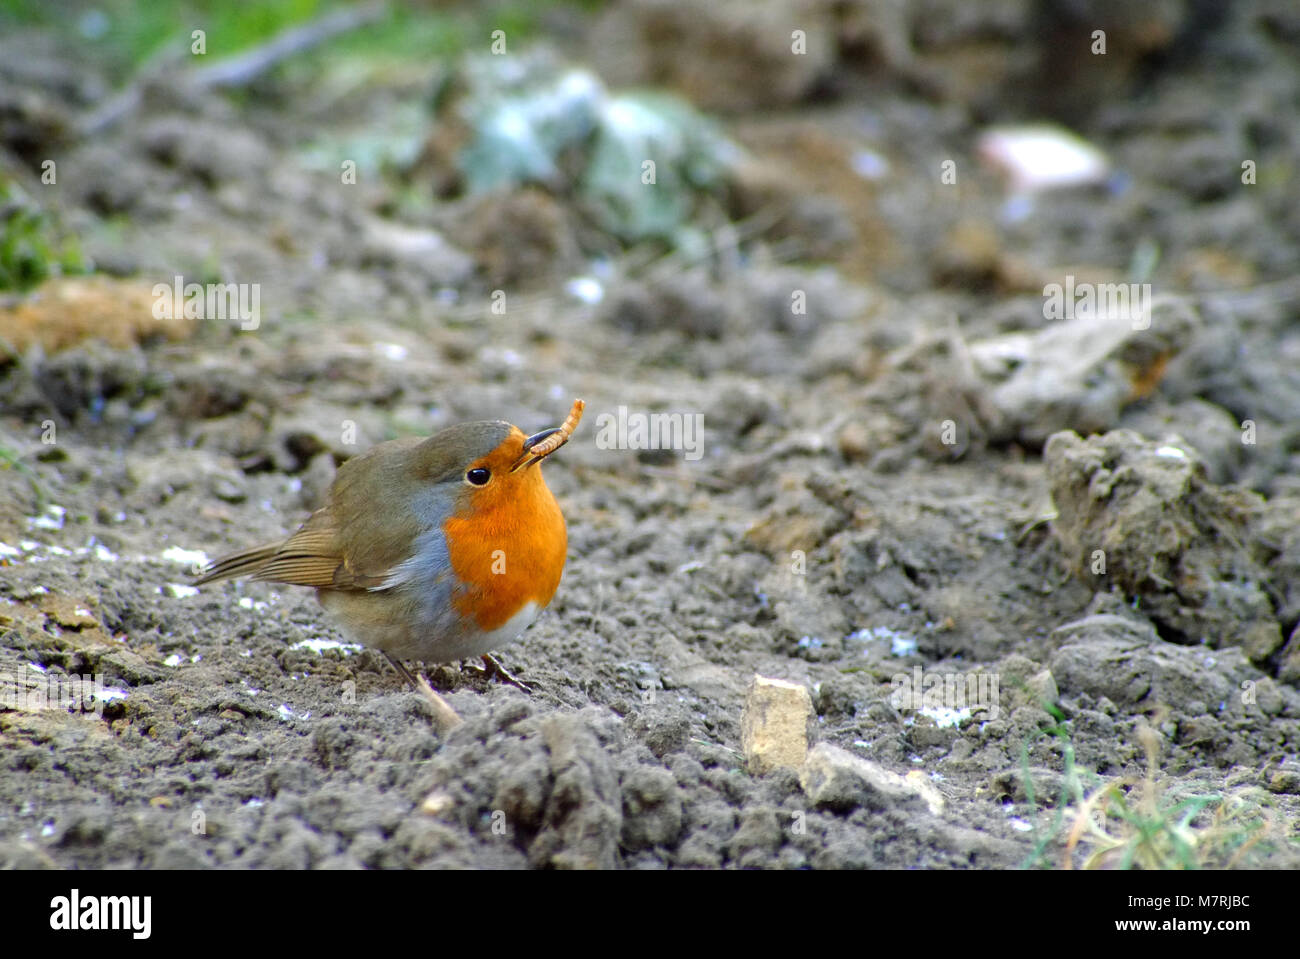 Robin (Erithacus rubecula) eating a meal worm in winter - Stock Image